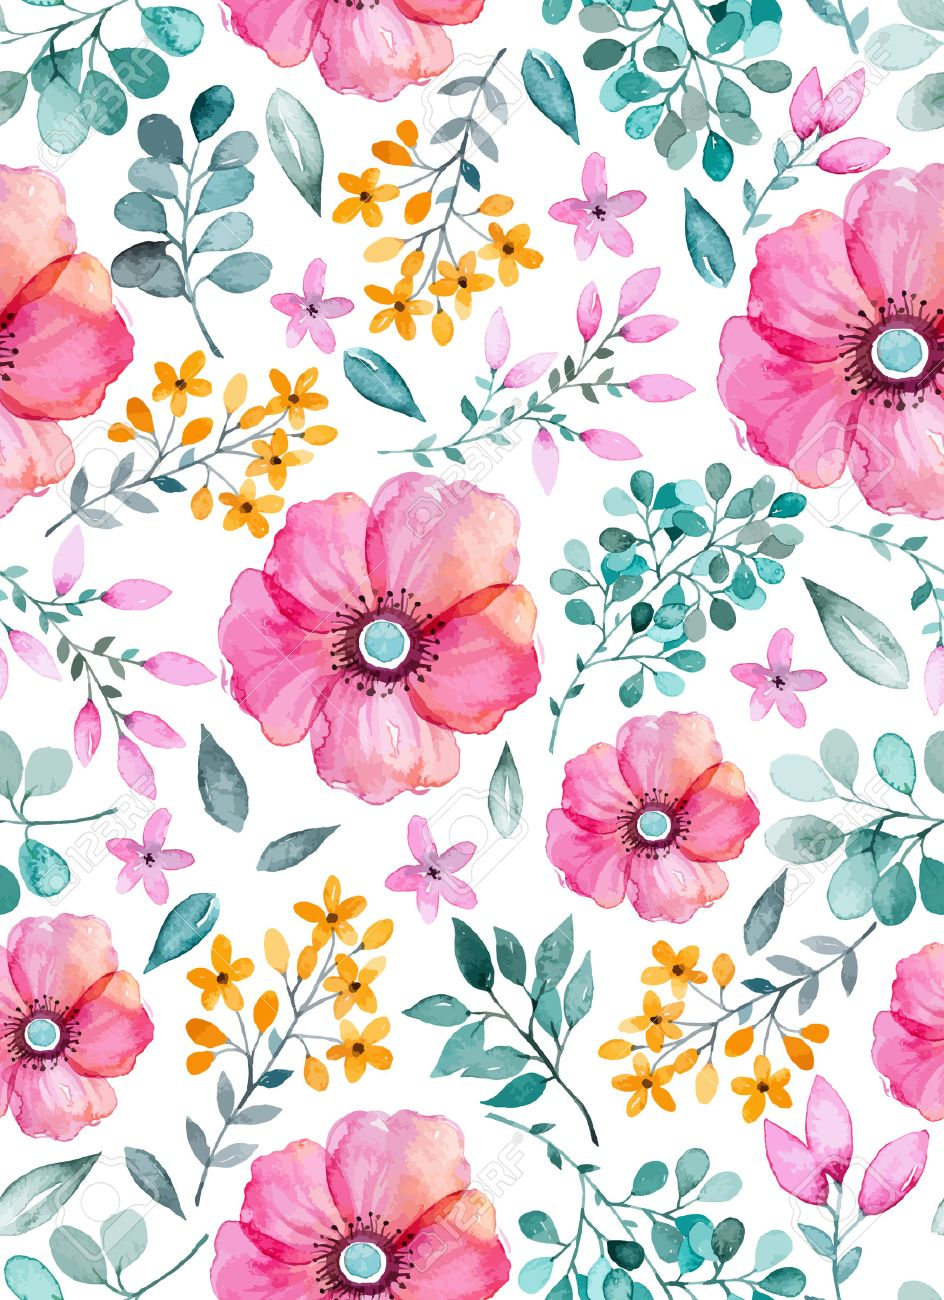 Watercolor Floral Seamless Pattern With Flowers And Leafs